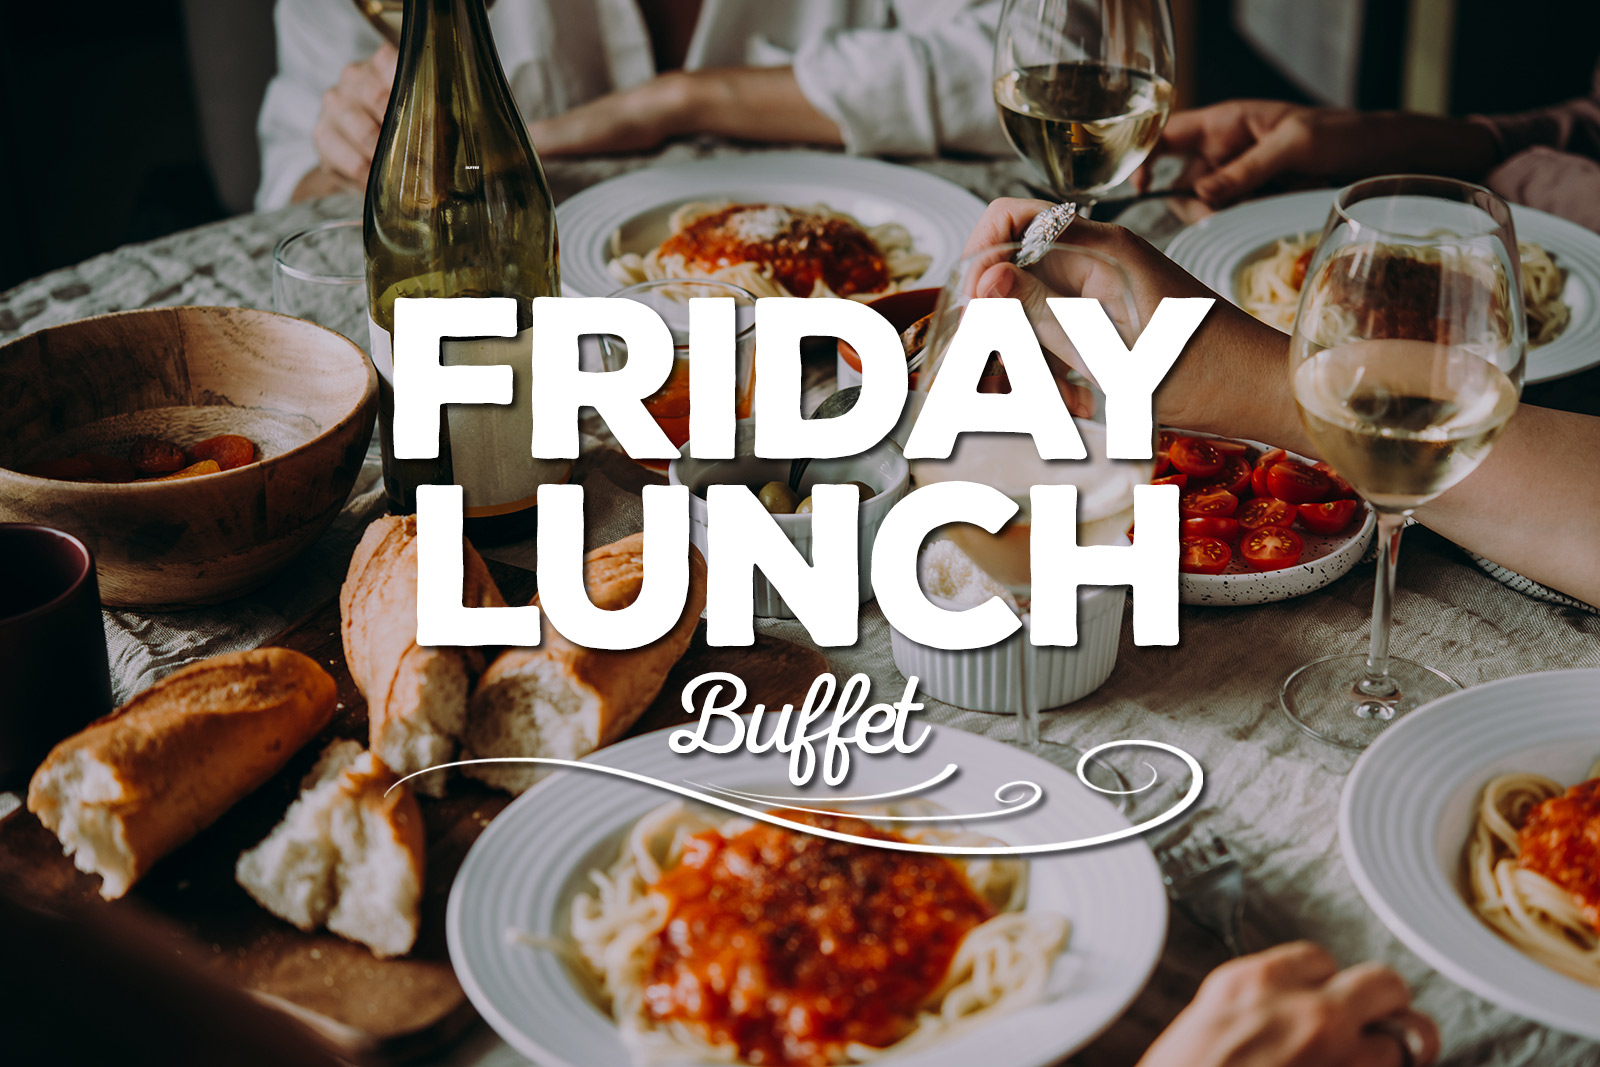 Friday Lunch Buffet Special Fogolar Furlan